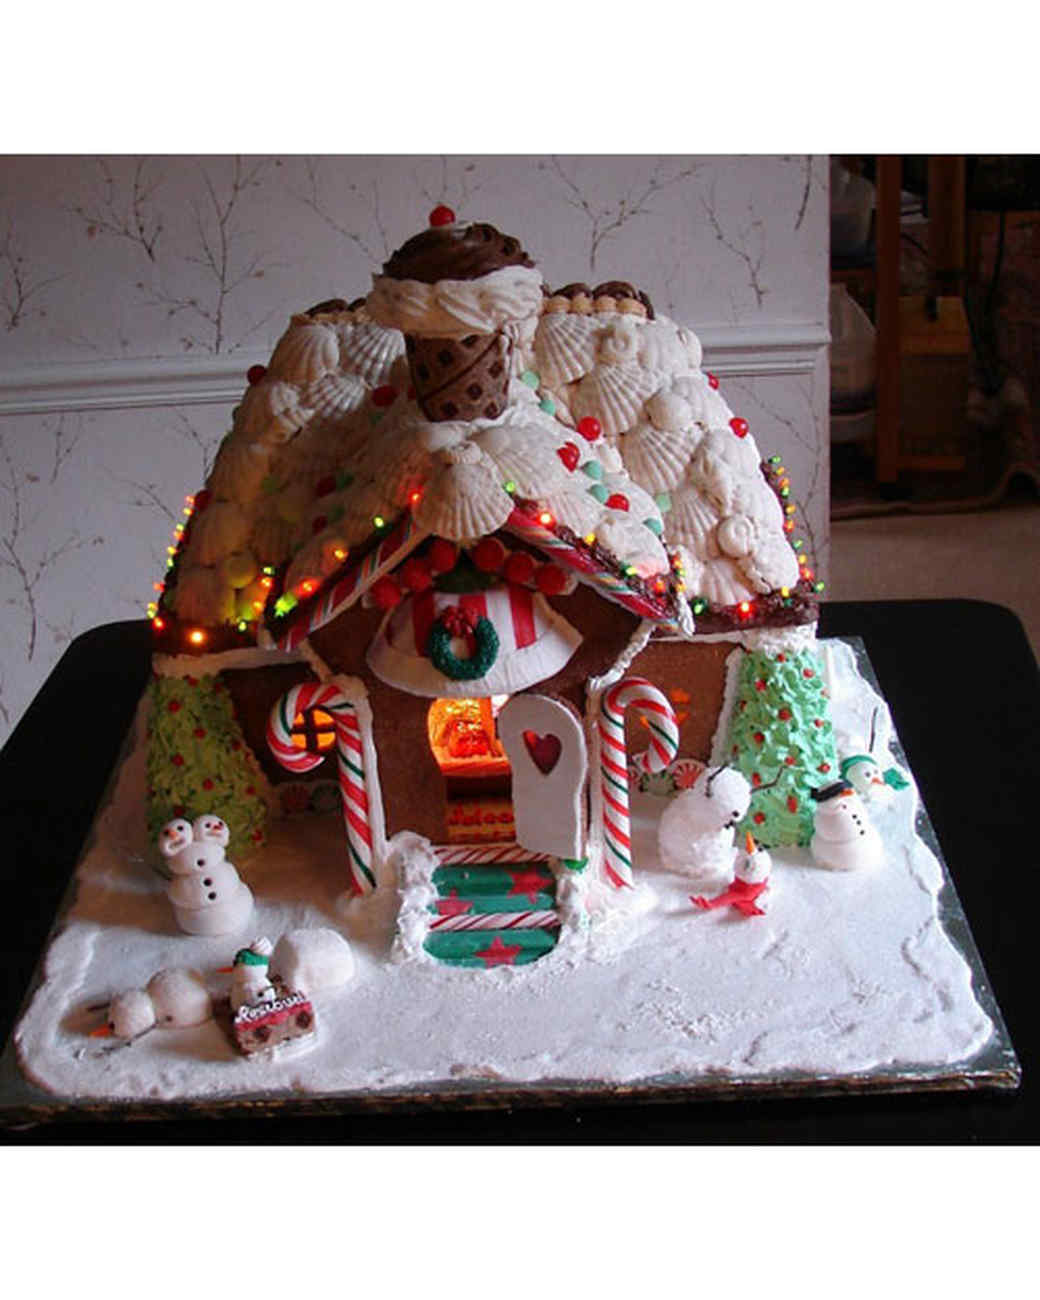 under a chocolate roof - Gingerbread House Christmas Decorations